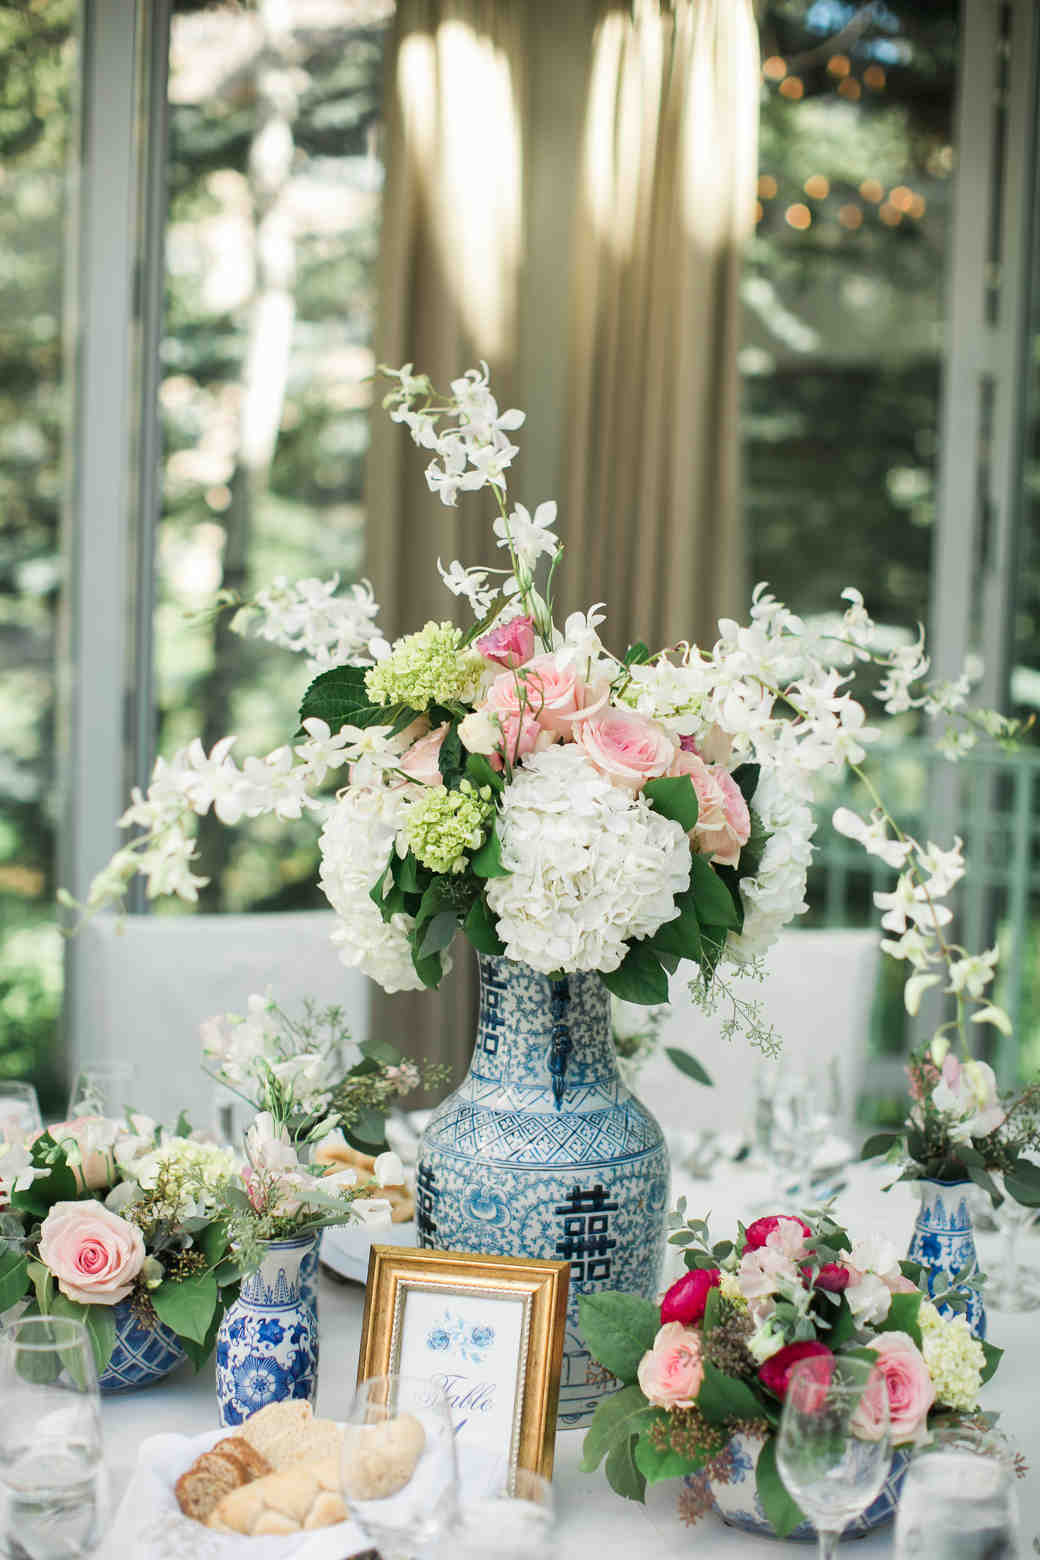 37 Bridal Shower Themes That Are Truly OneofaKind  Martha Stewart Weddings